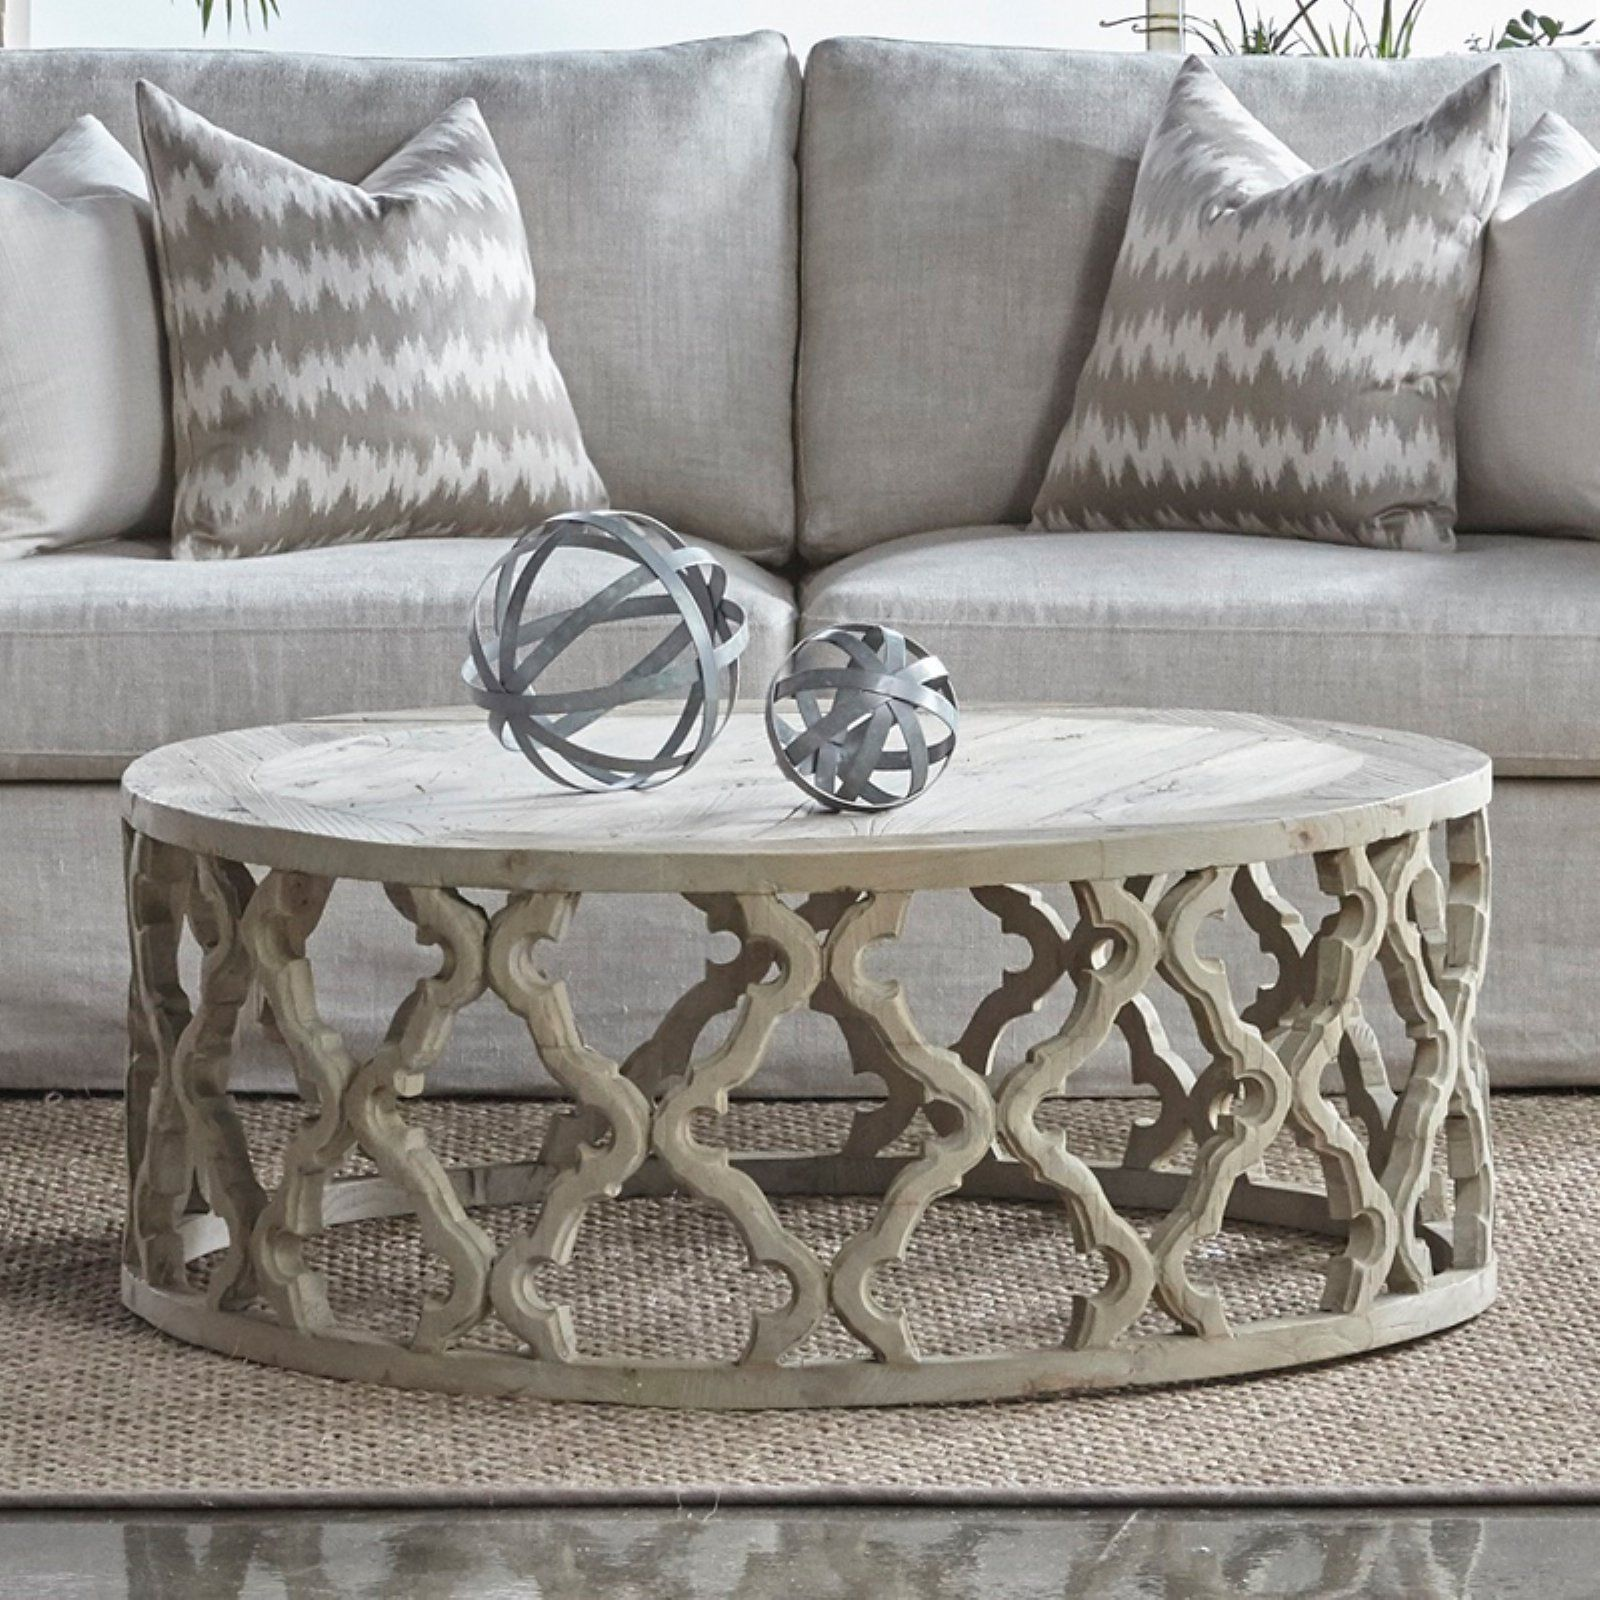 Orient Express Furniture Clover Coffee Table Coffee Table Large Coffee Tables Living Room Design Decor [ 1600 x 1600 Pixel ]